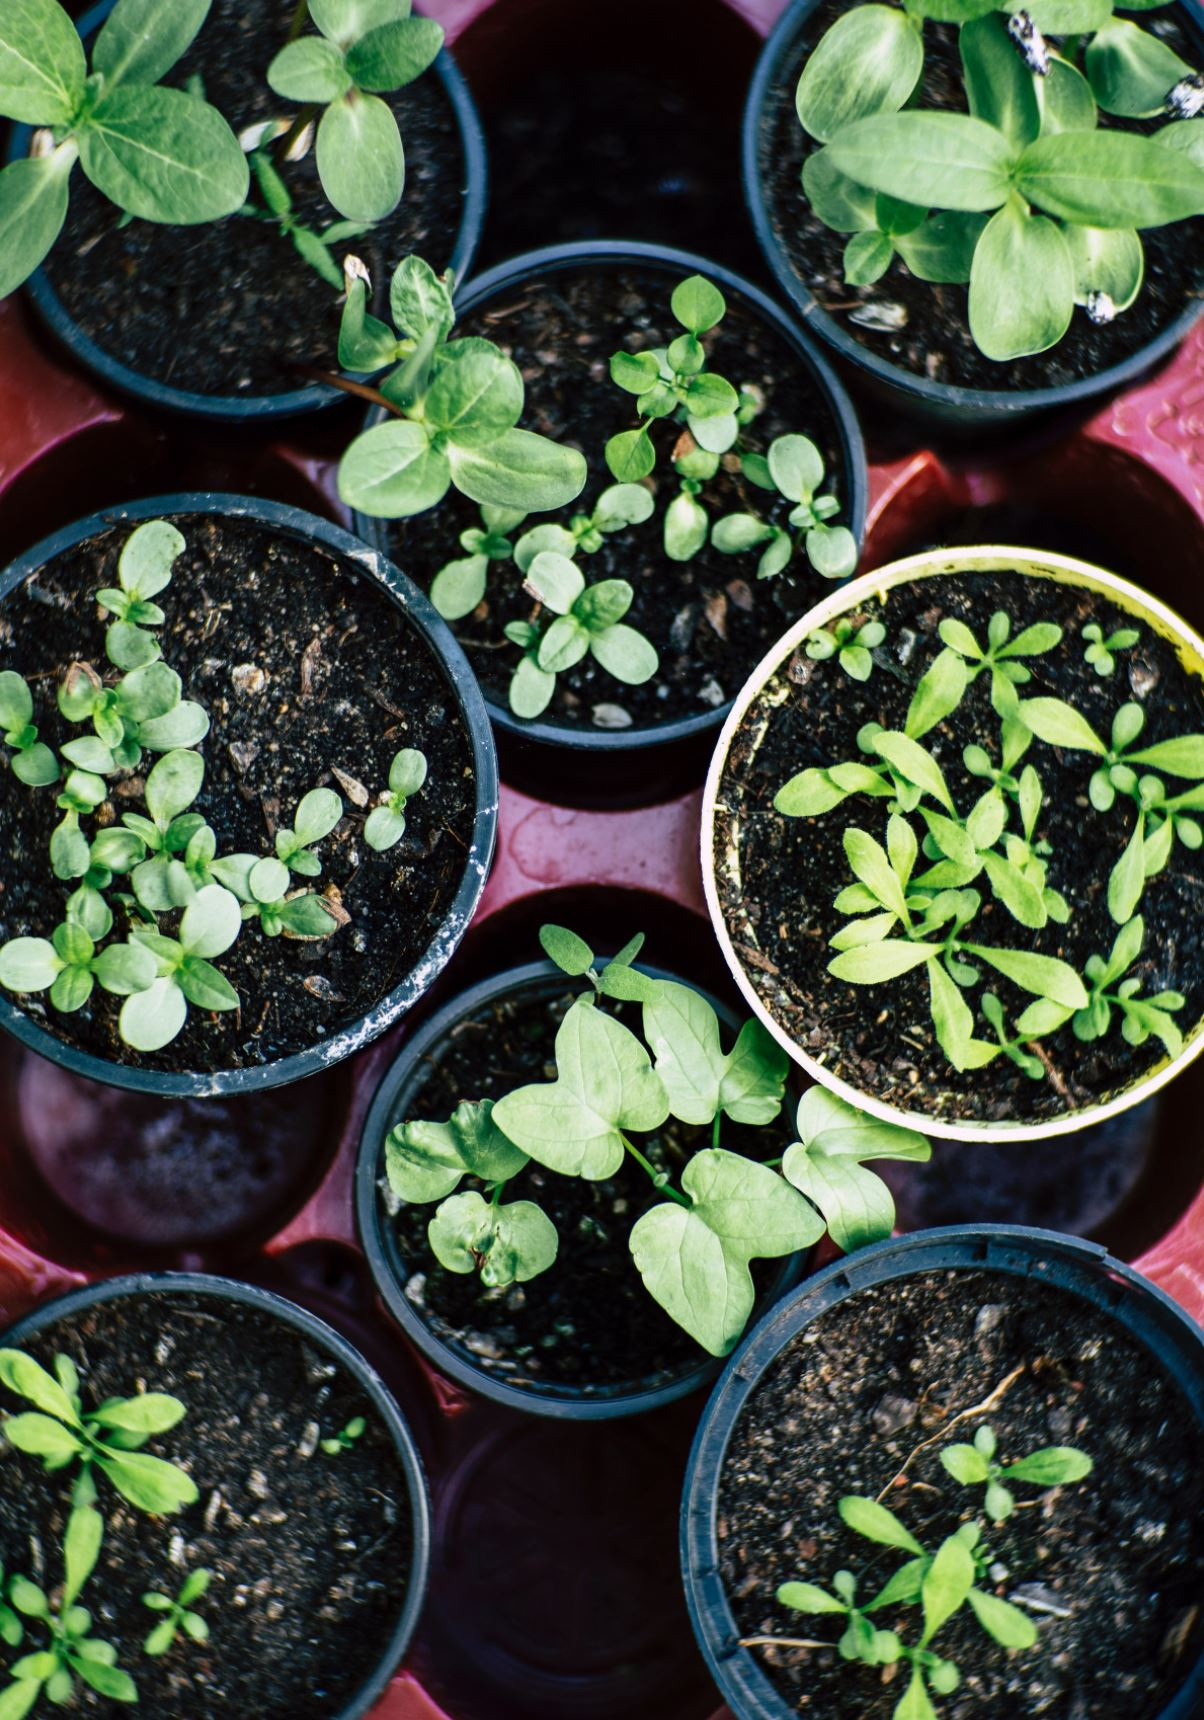 Realtor Magazine 2020 08 28 Five Design Trends emerging after the COVID-19 Coronavirus pandemic Hoey Team eXp Realty Gardening a new hobby